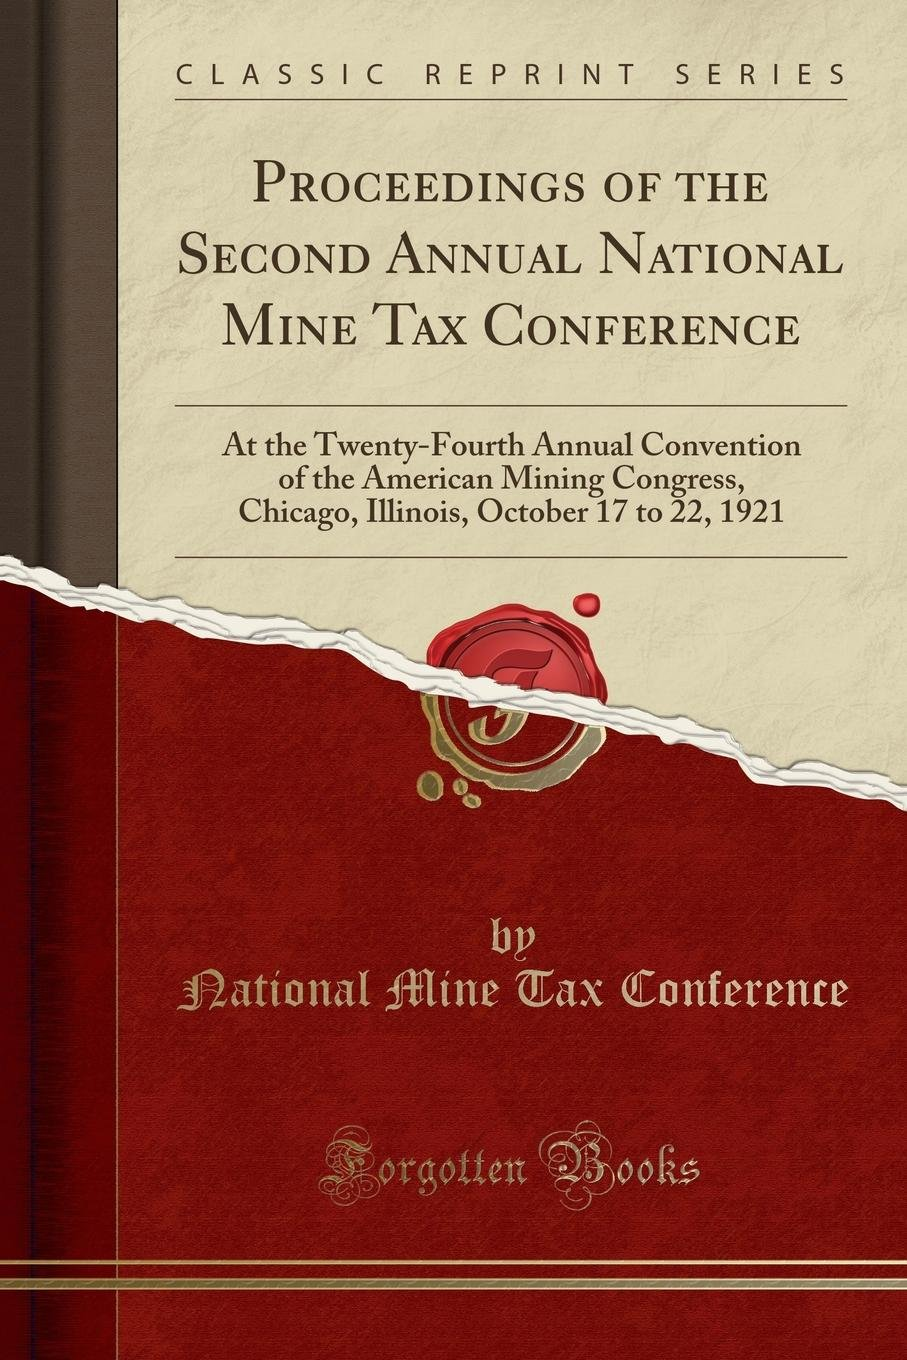 Download Proceedings of the Second Annual National Mine Tax Conference: At the Twenty-Fourth Annual Convention of the American Mining Congress, Chicago, Illinois, October 17 to 22, 1921 (Classic Reprint) pdf